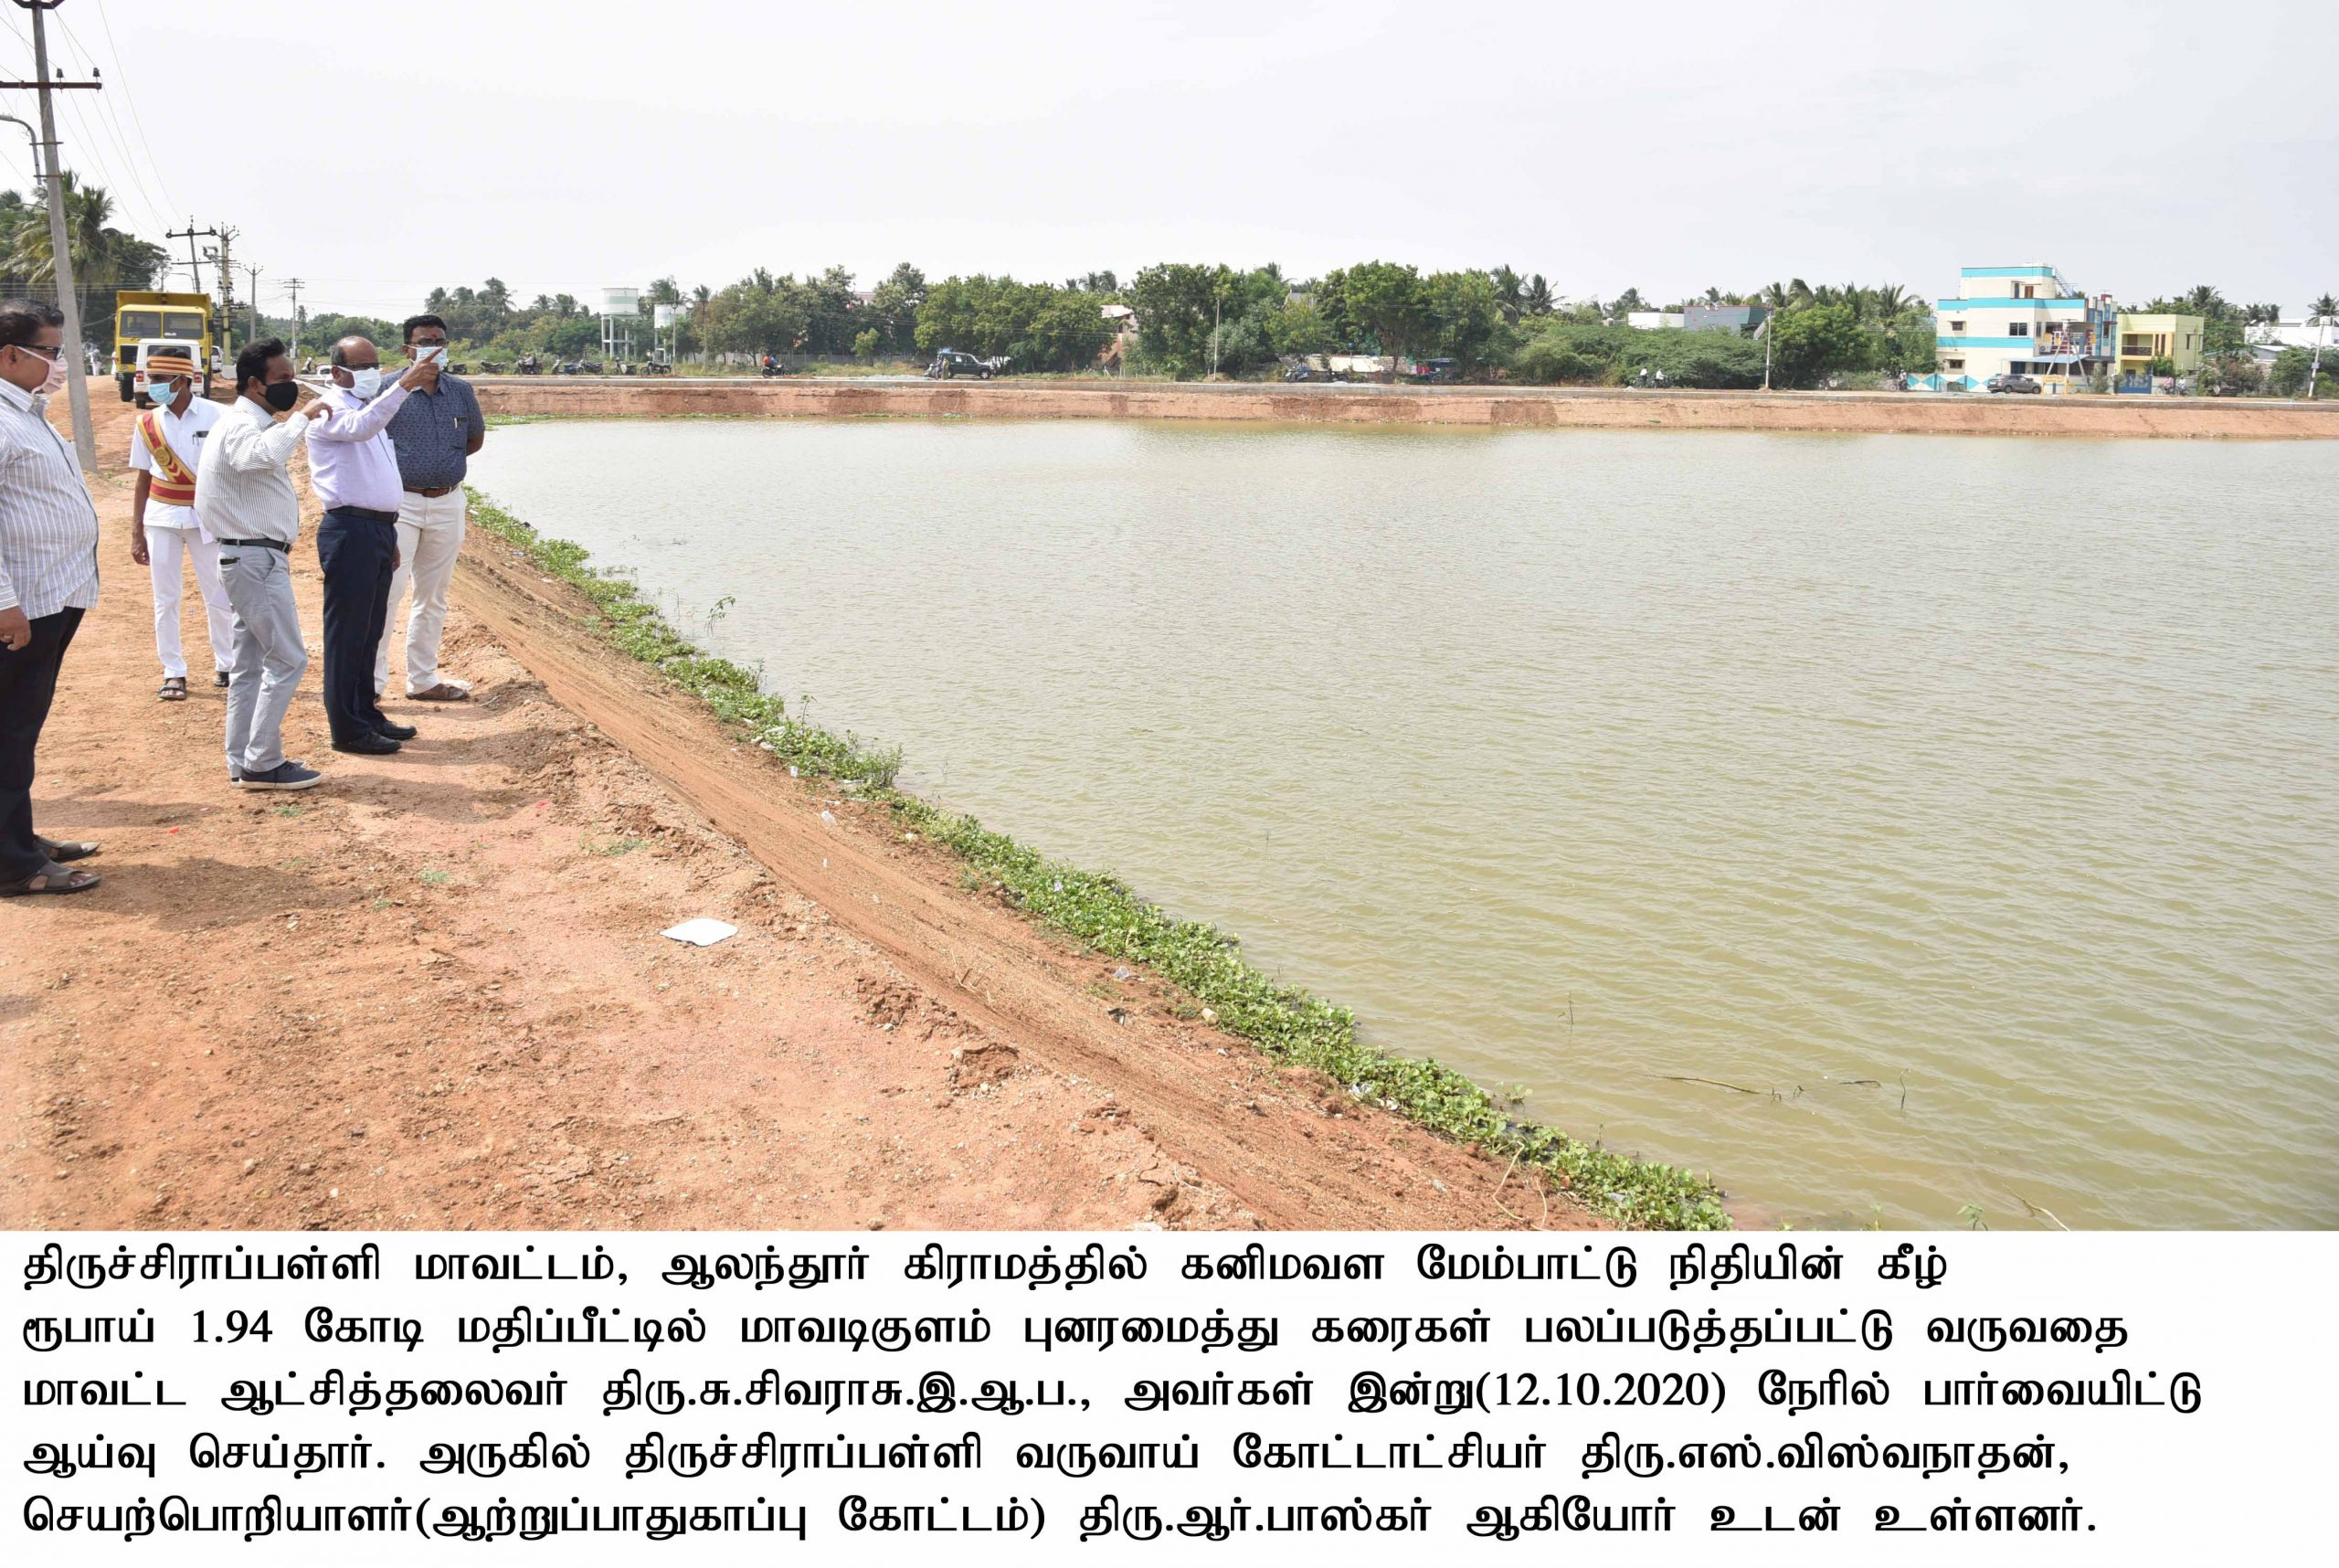 District Collector Inspected the reconstruction of Maavadikulam Tank work on 12-10-2020